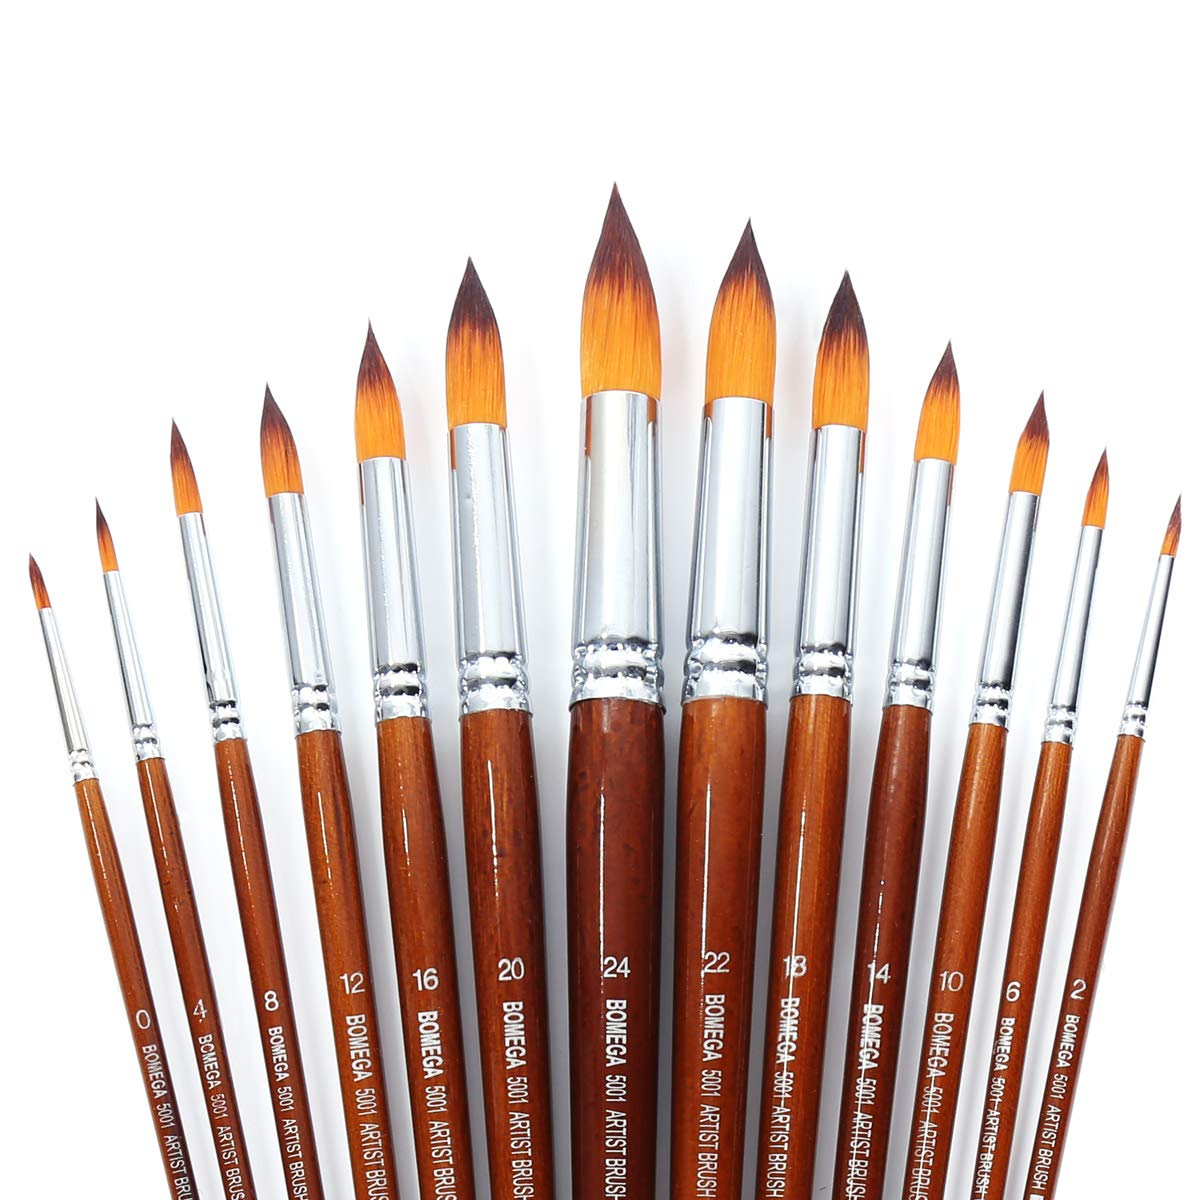 13 Pcs Long Handle Pointed Round Large Paint Brushes Set with Premium Quality Synthetic Sable Hair for Acrylic Watercolor Oil Gouache Painting by Art Students, Professionals and Artists by ONE HAPPY CHOICE